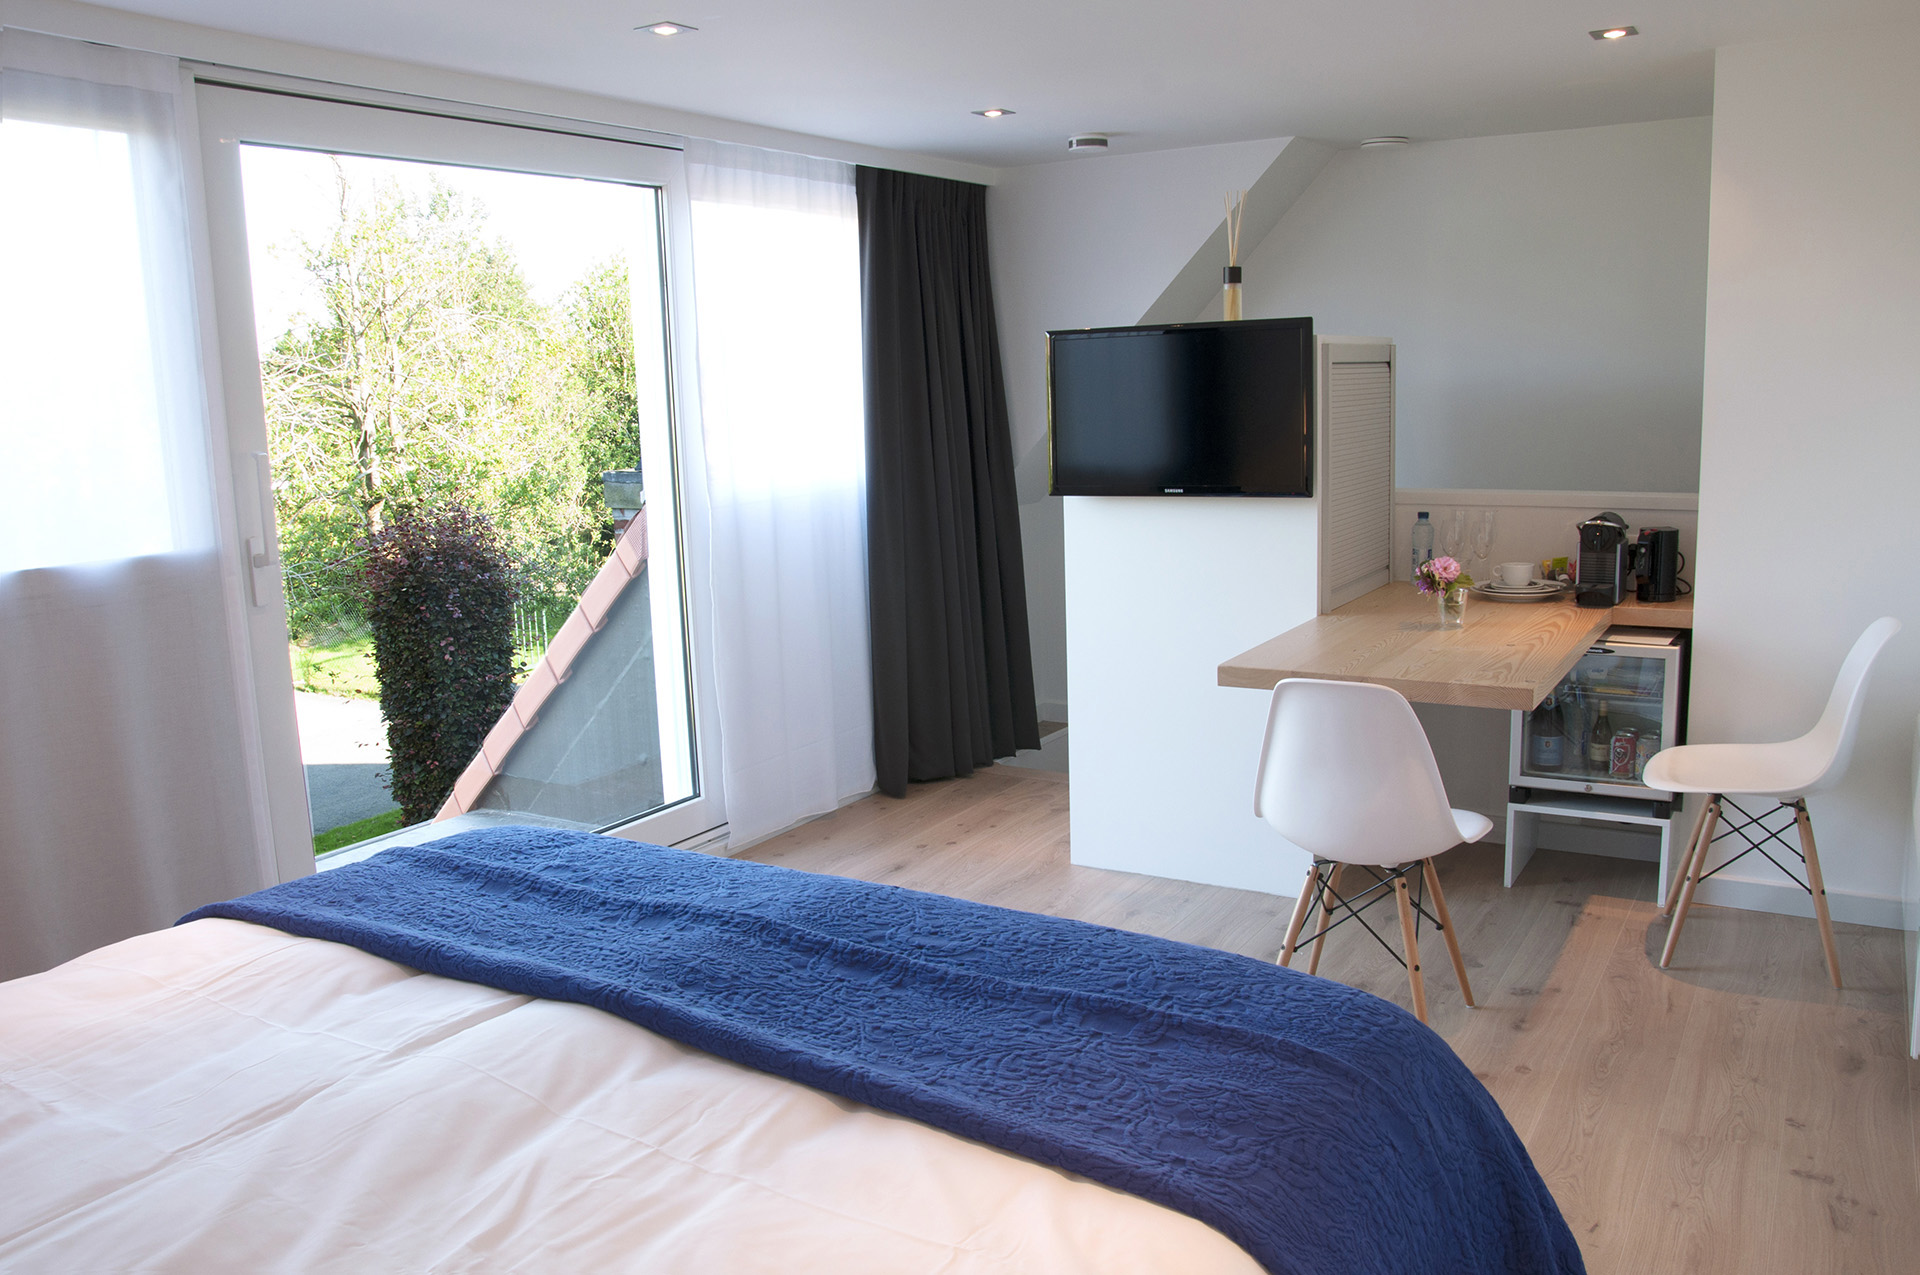 overnachten in bed & breakfast Aquavit in Knokke